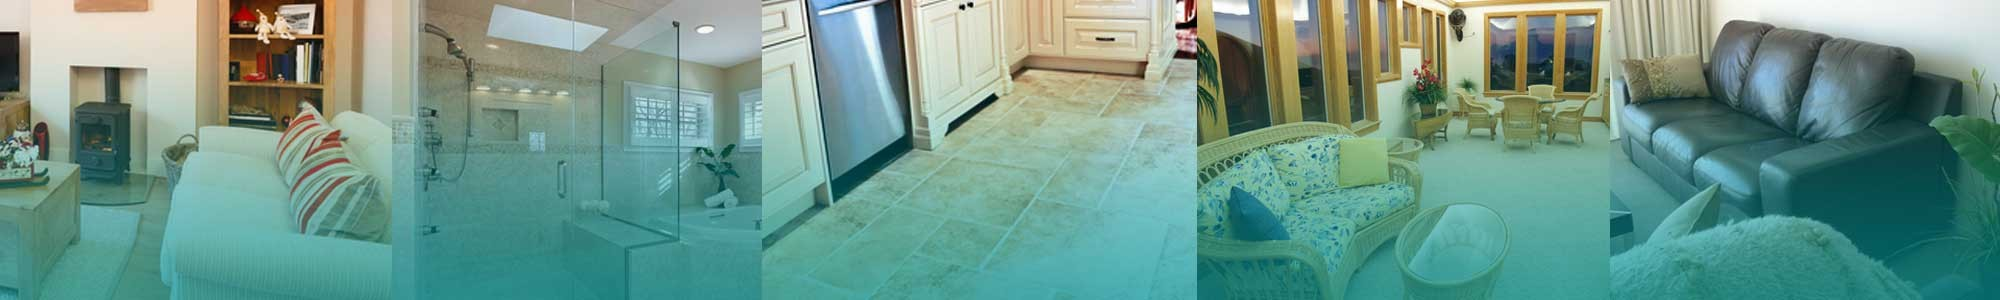 Alpine Carpet & Tile Cleaning